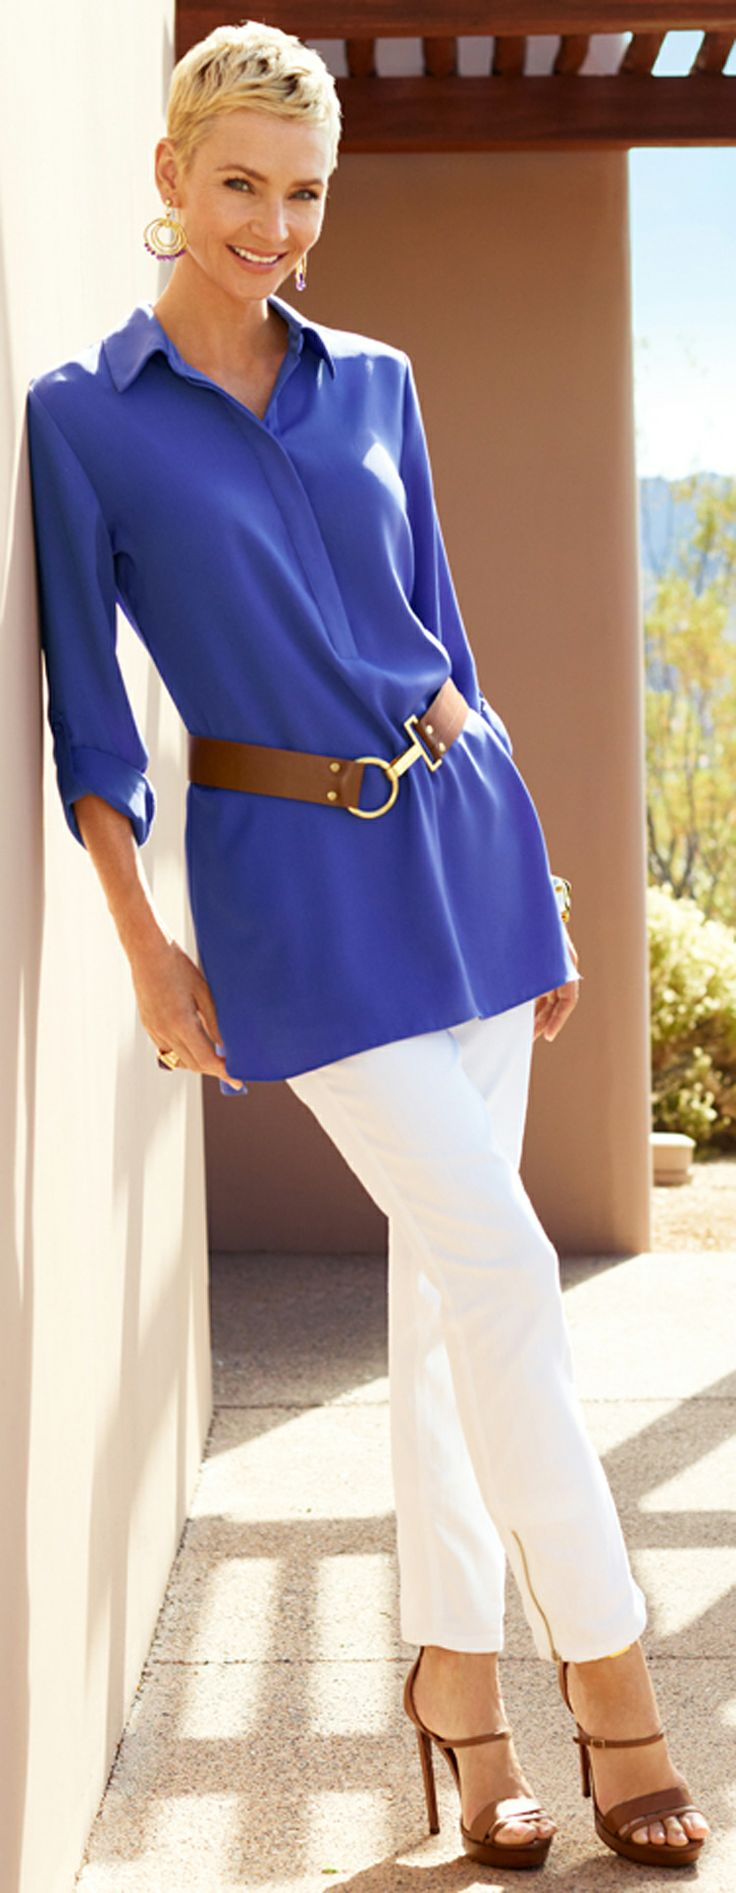 Slimming Secret: Belt a big shirt (relaxed CAN be flattering). #DestinationFabulous #travel #spring #chicos